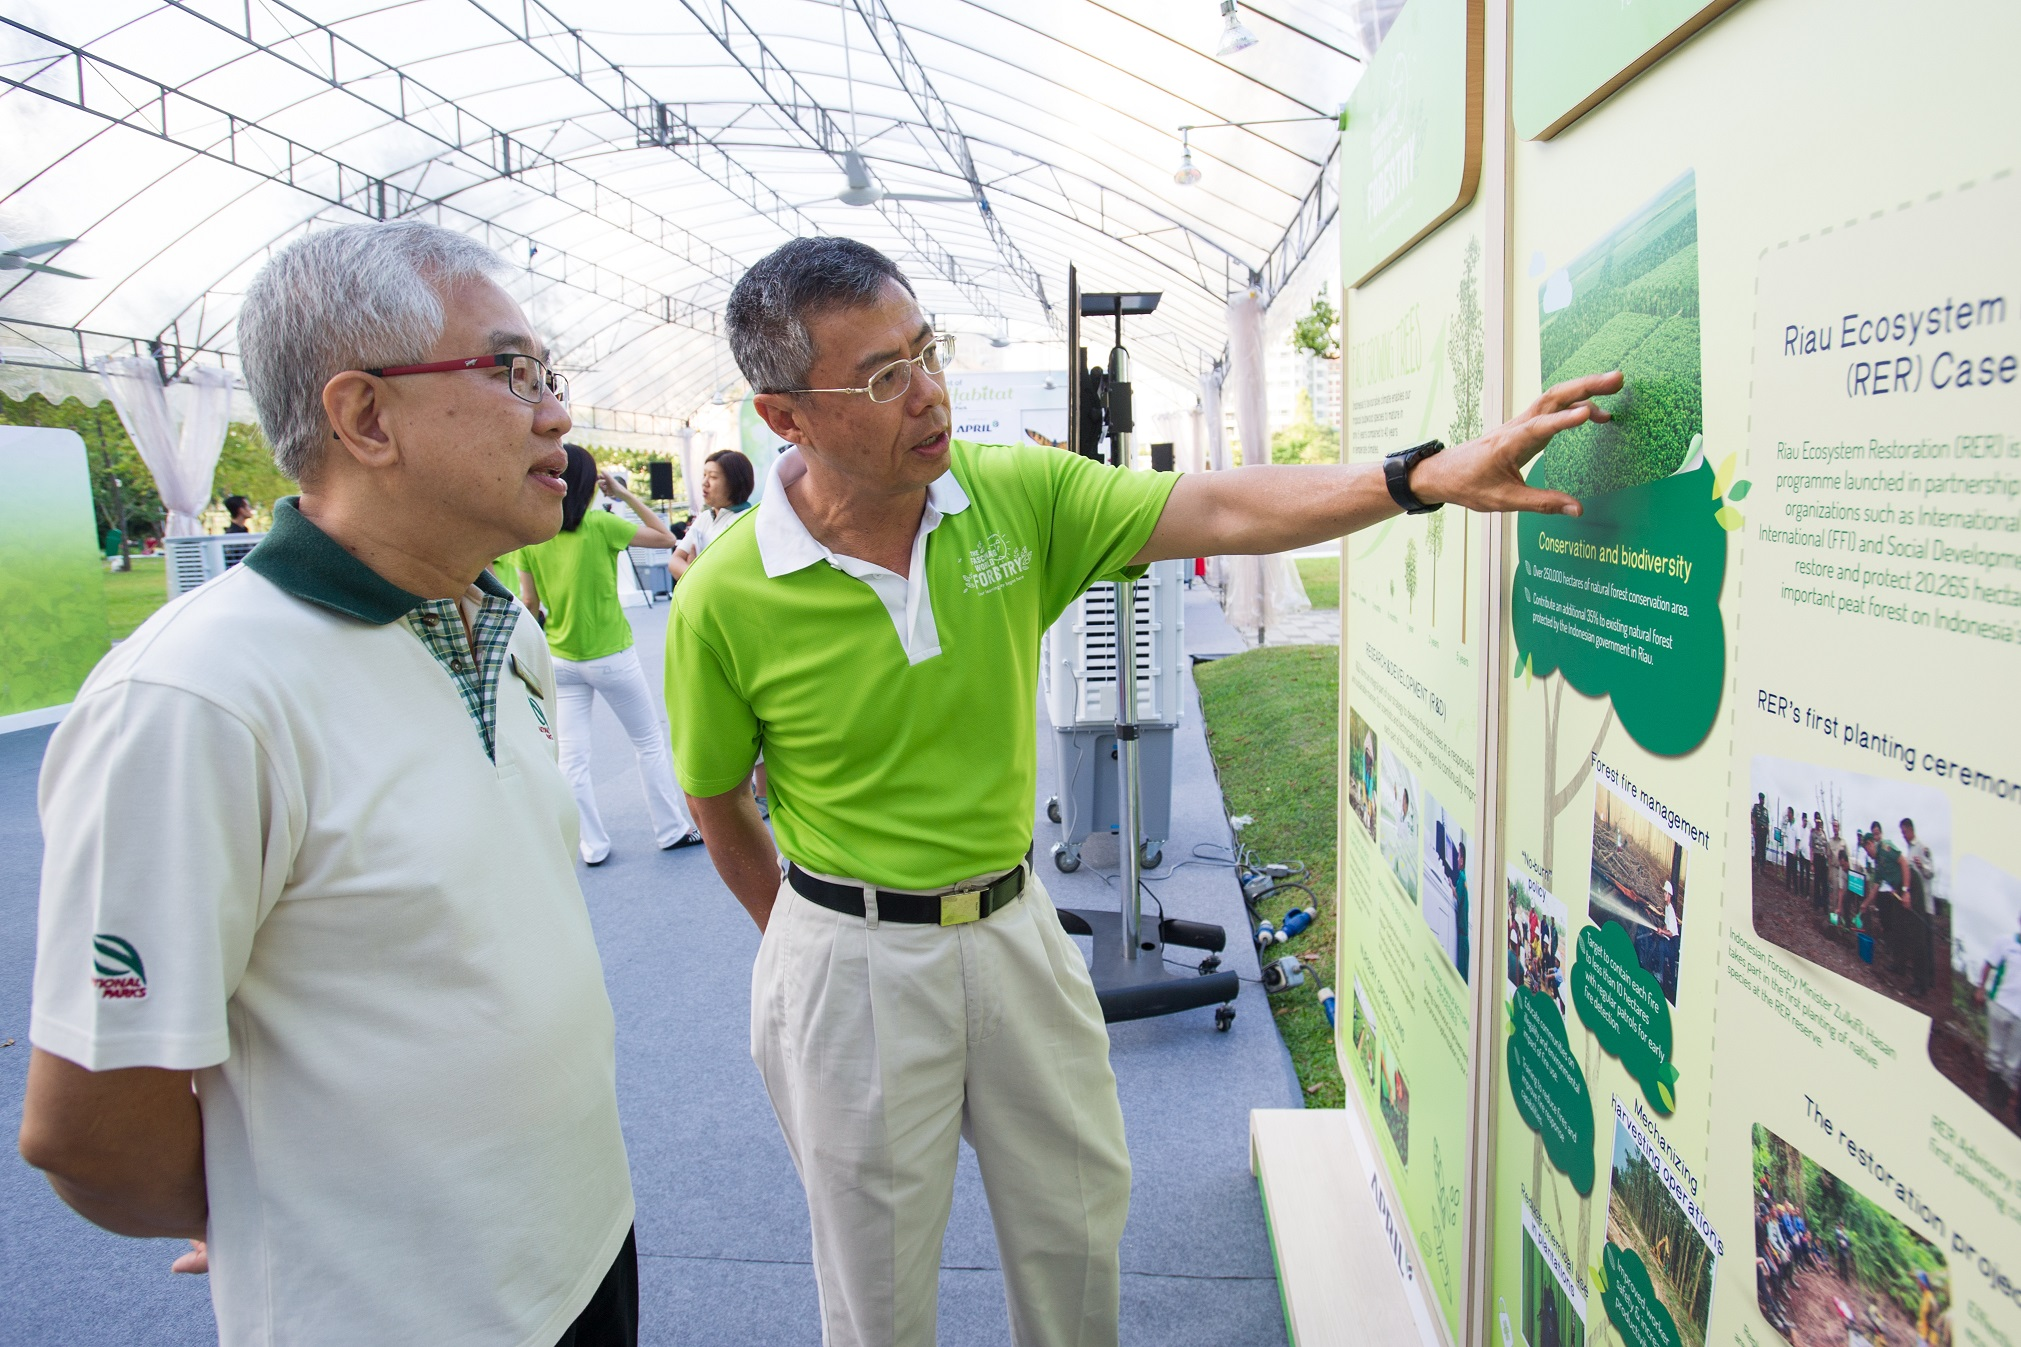 APRIL Group Chairman Bey Soo Khiang (right) shares APRIL's robust conservation and eco-restoration programmes with NParks' Assistant CEO Kong Yit San (left).